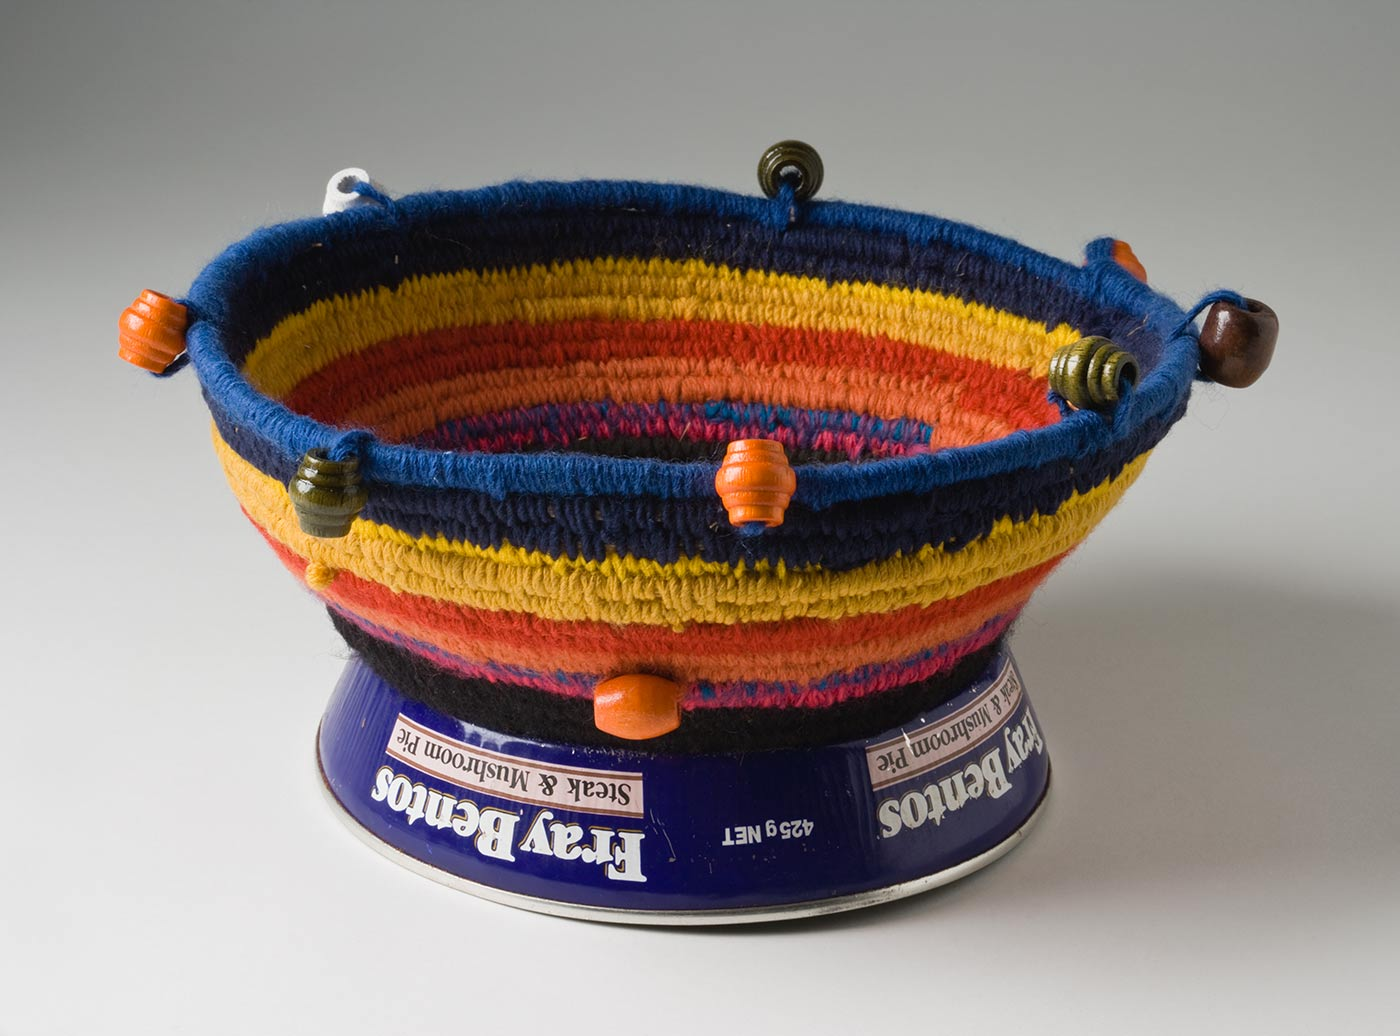 A circular coiled multicoloured yarn and plant fibre basket with a metal base and bead decoration. The base is made of a blue metal 'Fray Bento / Steak and Mushroom Pie' tin with sides, that is placed upside down. The yarn section is attached by black yarn threaded through holes punched in the metal. The closely coiled yarn is in stripes starting with blue at the top edge then yellow, red, orange, pink and black. The top edge and sides have a decoration of evenly spaced carved cylindrical wooden beads in orange, brown, green and white. - click to view larger image